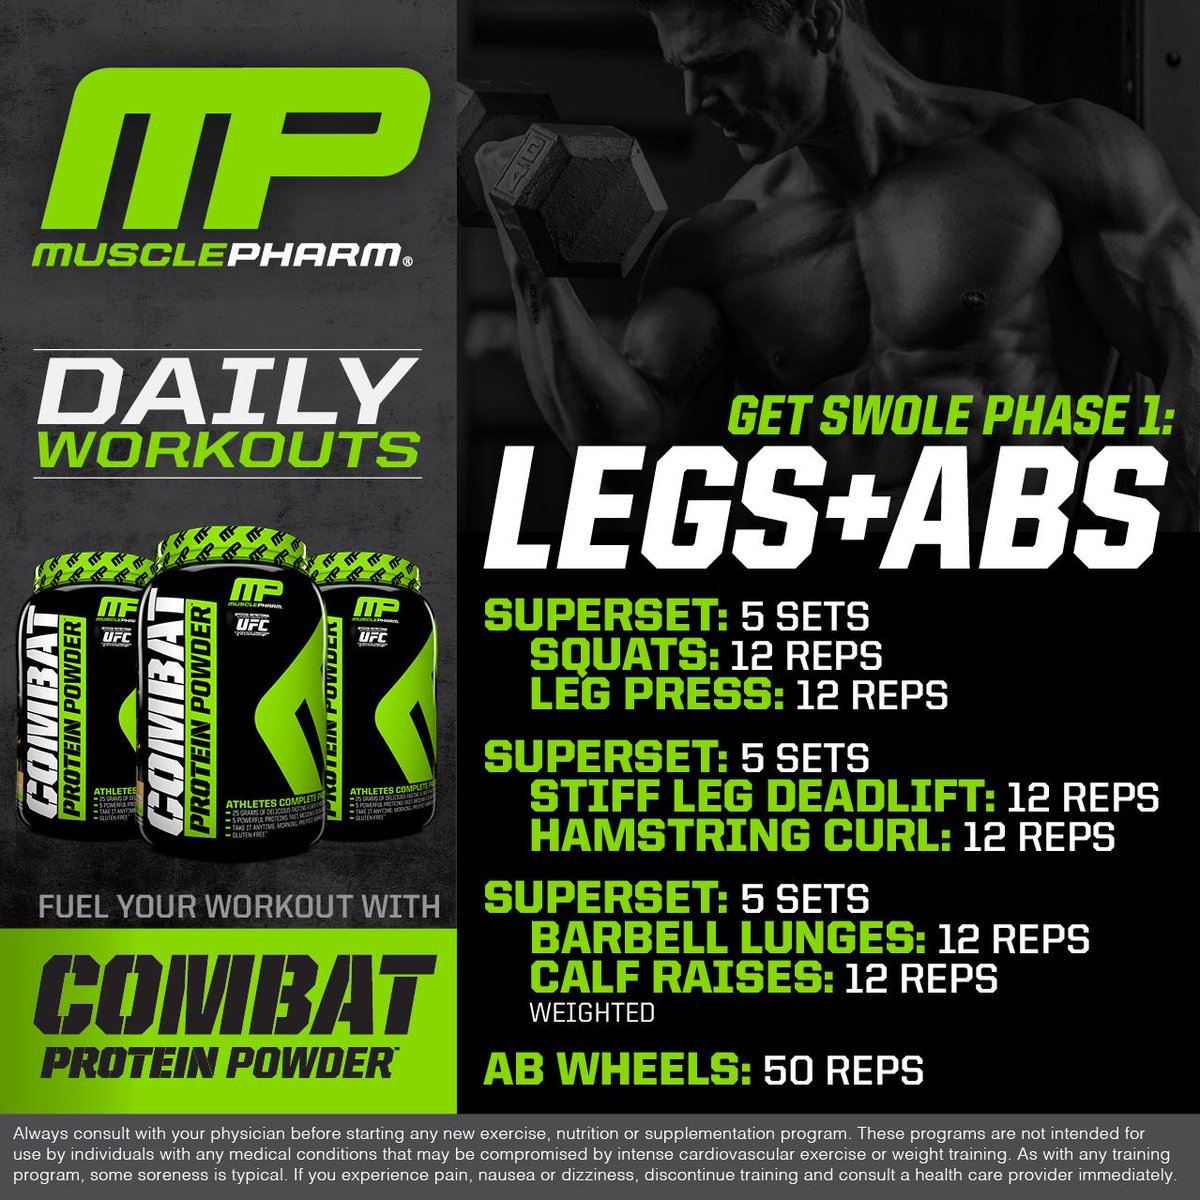 Muscle pharm workout program phase 2 anotherhackedlife musclepharm on twitter mp workout of the day it s get swole malvernweather Images